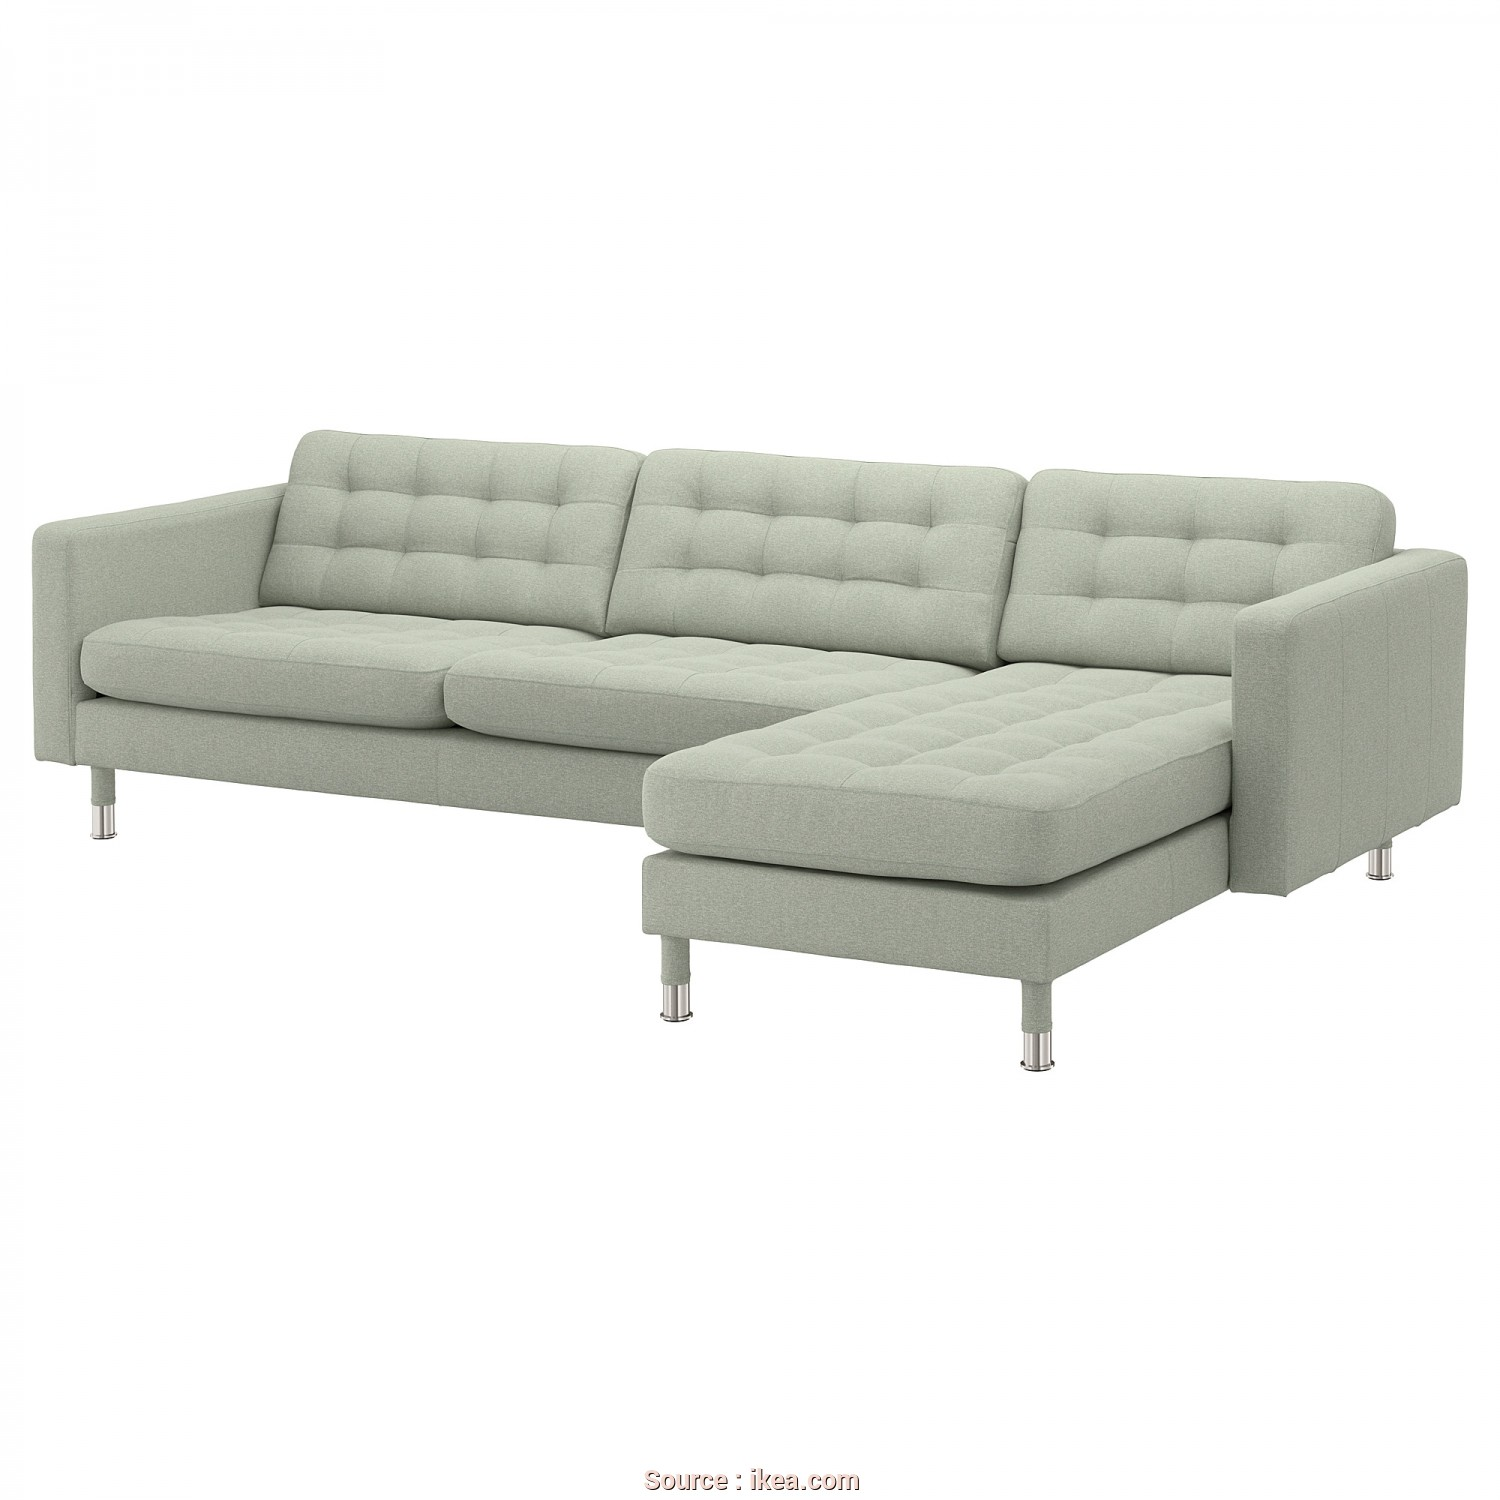 Divano Dm984 Beige Modular Office Sofa, Bello LANDSKRONA Sectional, 4-Seat, With Chaise, Gunnared Light Green/Wood